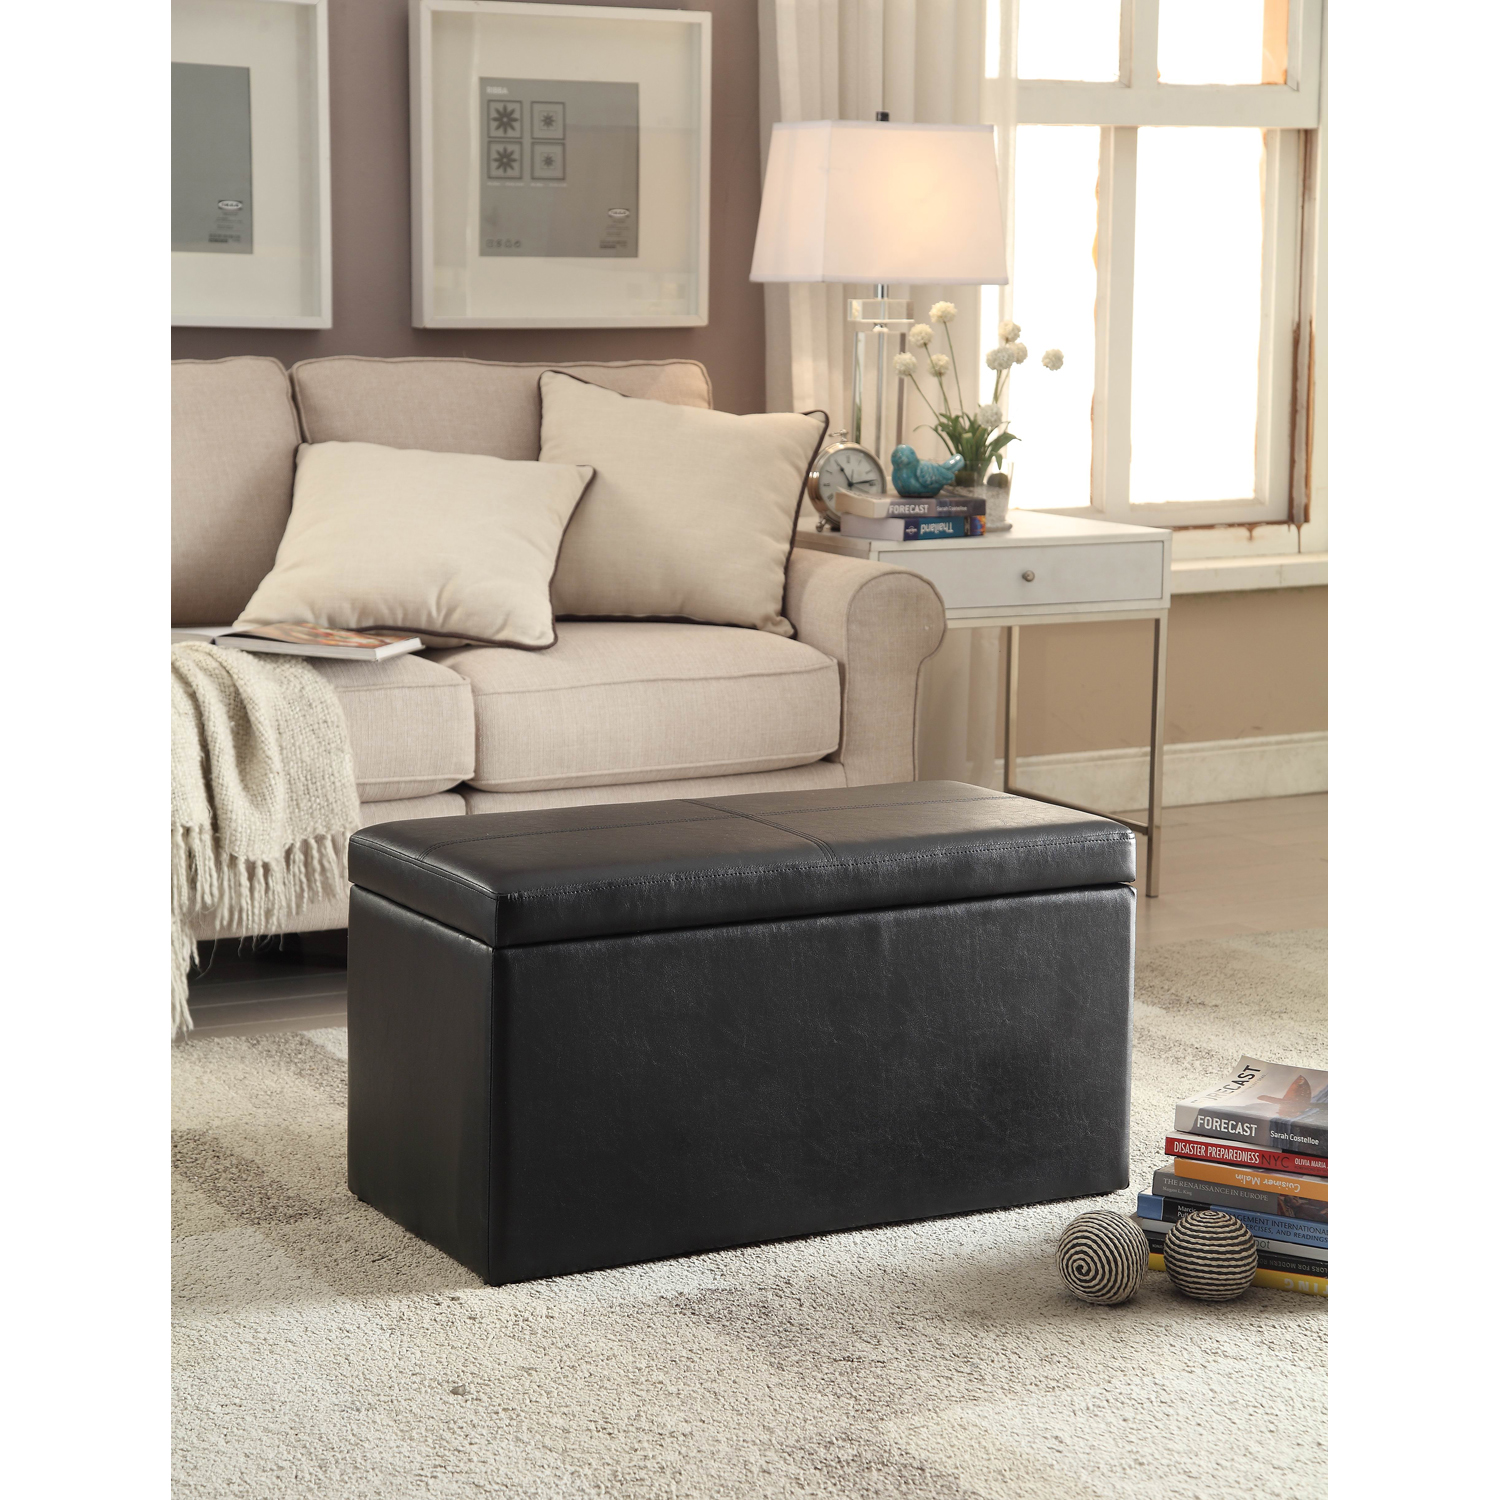 "Better Homes and Gardens 30"" Faux Leather Hinged Storage Ottoman - Black"